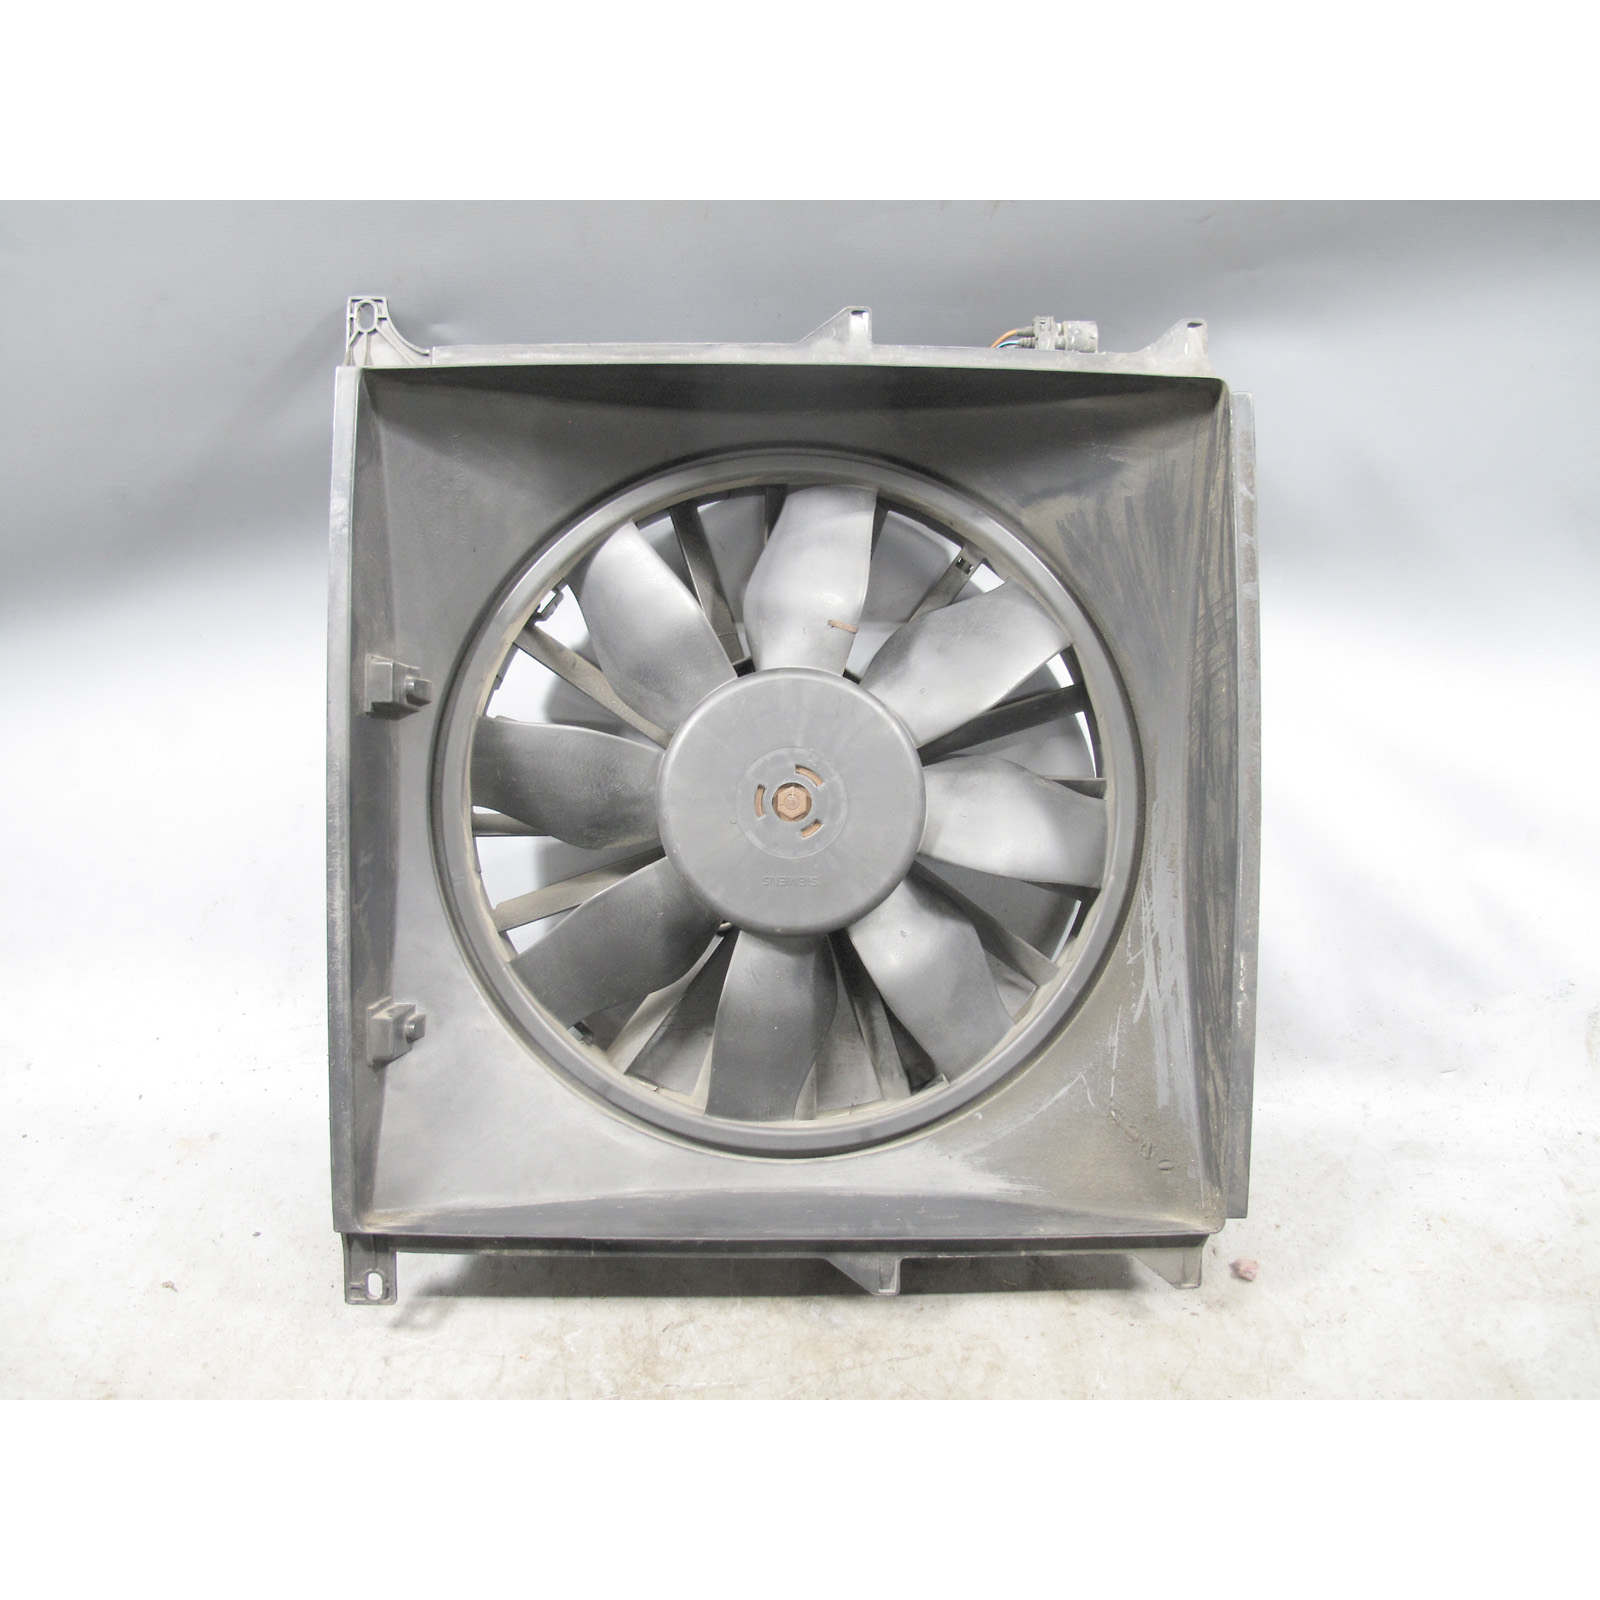 BMW E36 3 Series Z3 4cyl Electric Engine Cooling Fan 1992 1999 318i 1.9  USED OEM